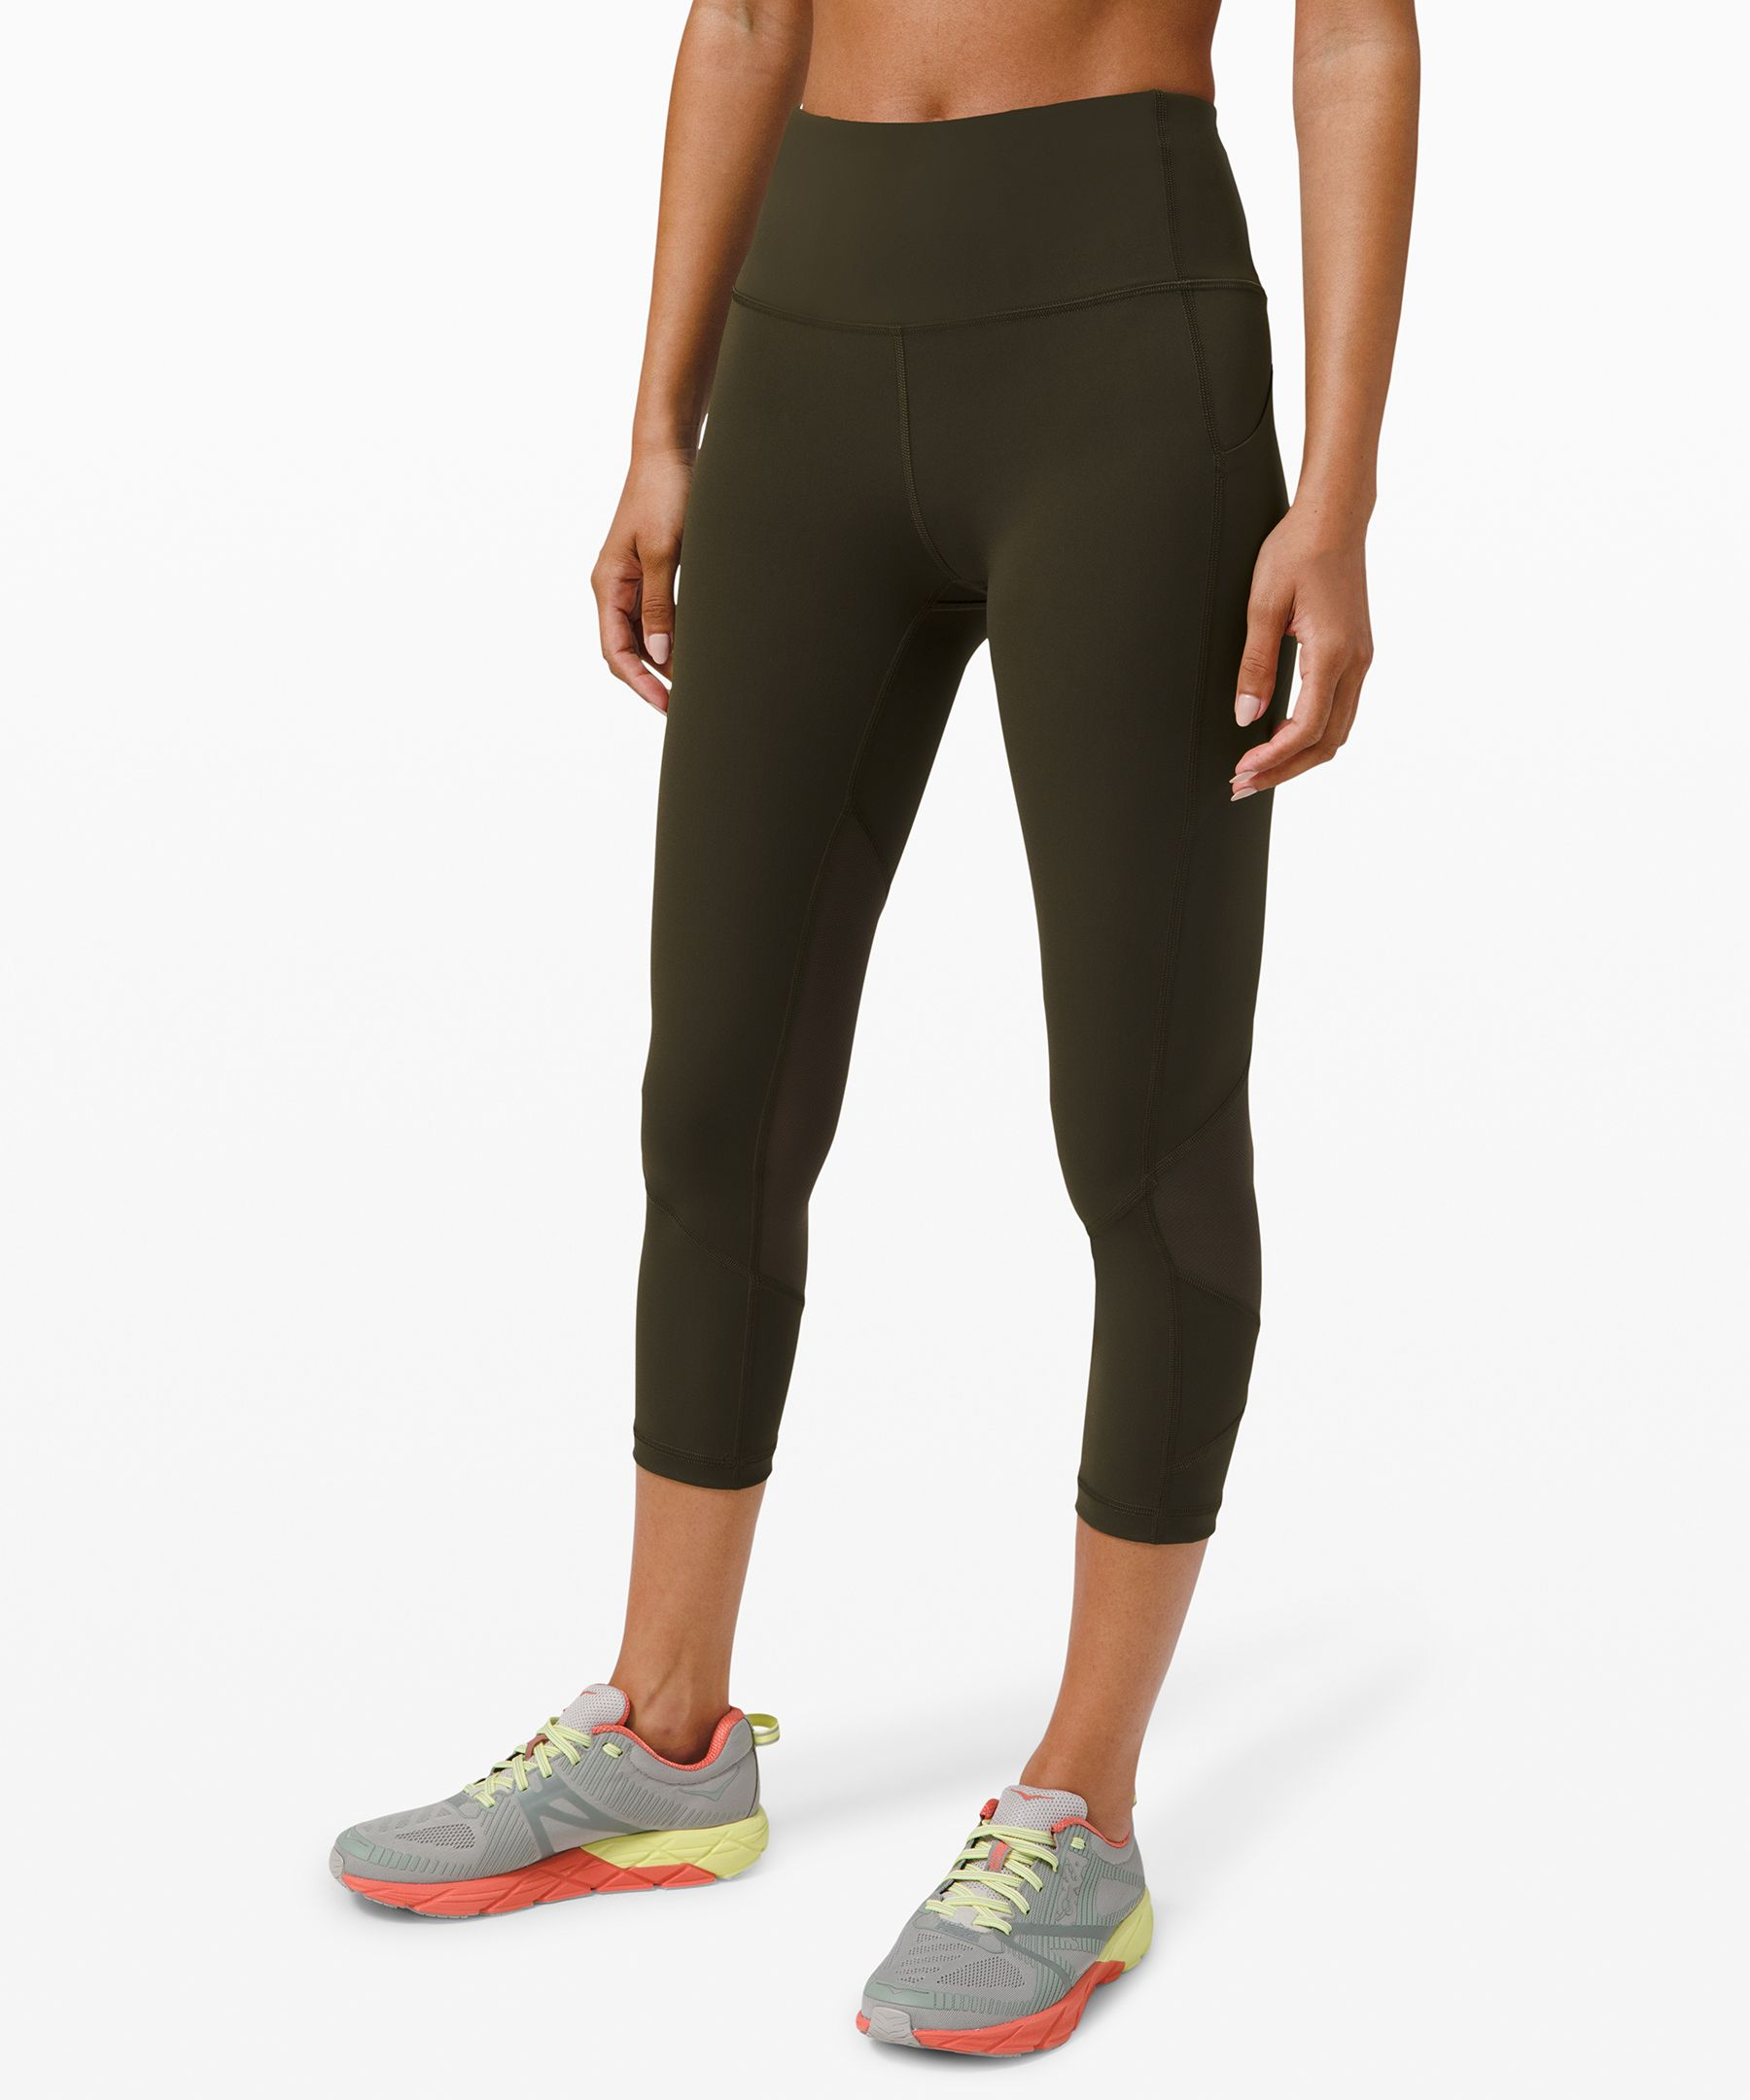 Pace Rival High Rise Crop 22 Women S Capris Lululemon